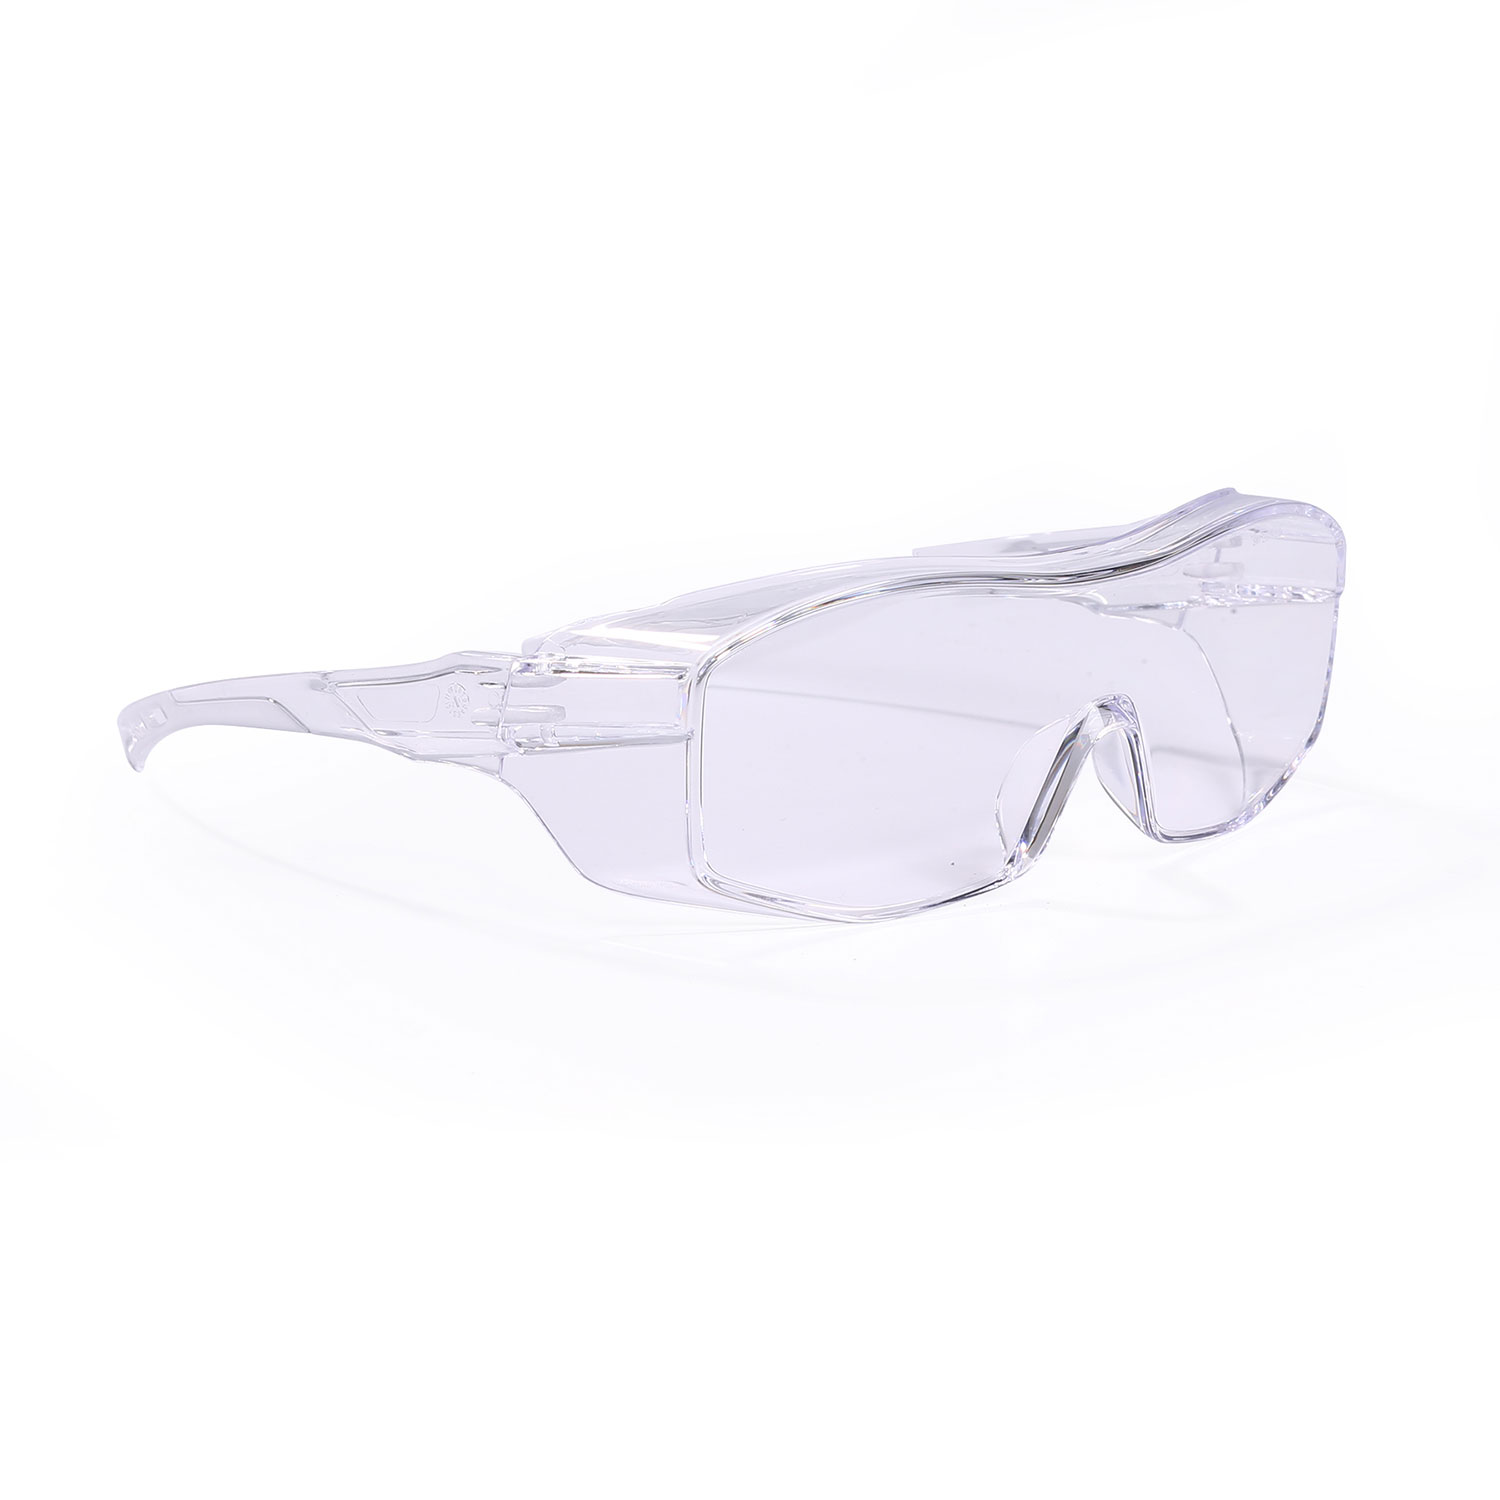 3M Peltor Sport Over The Glass Safety Eyewear